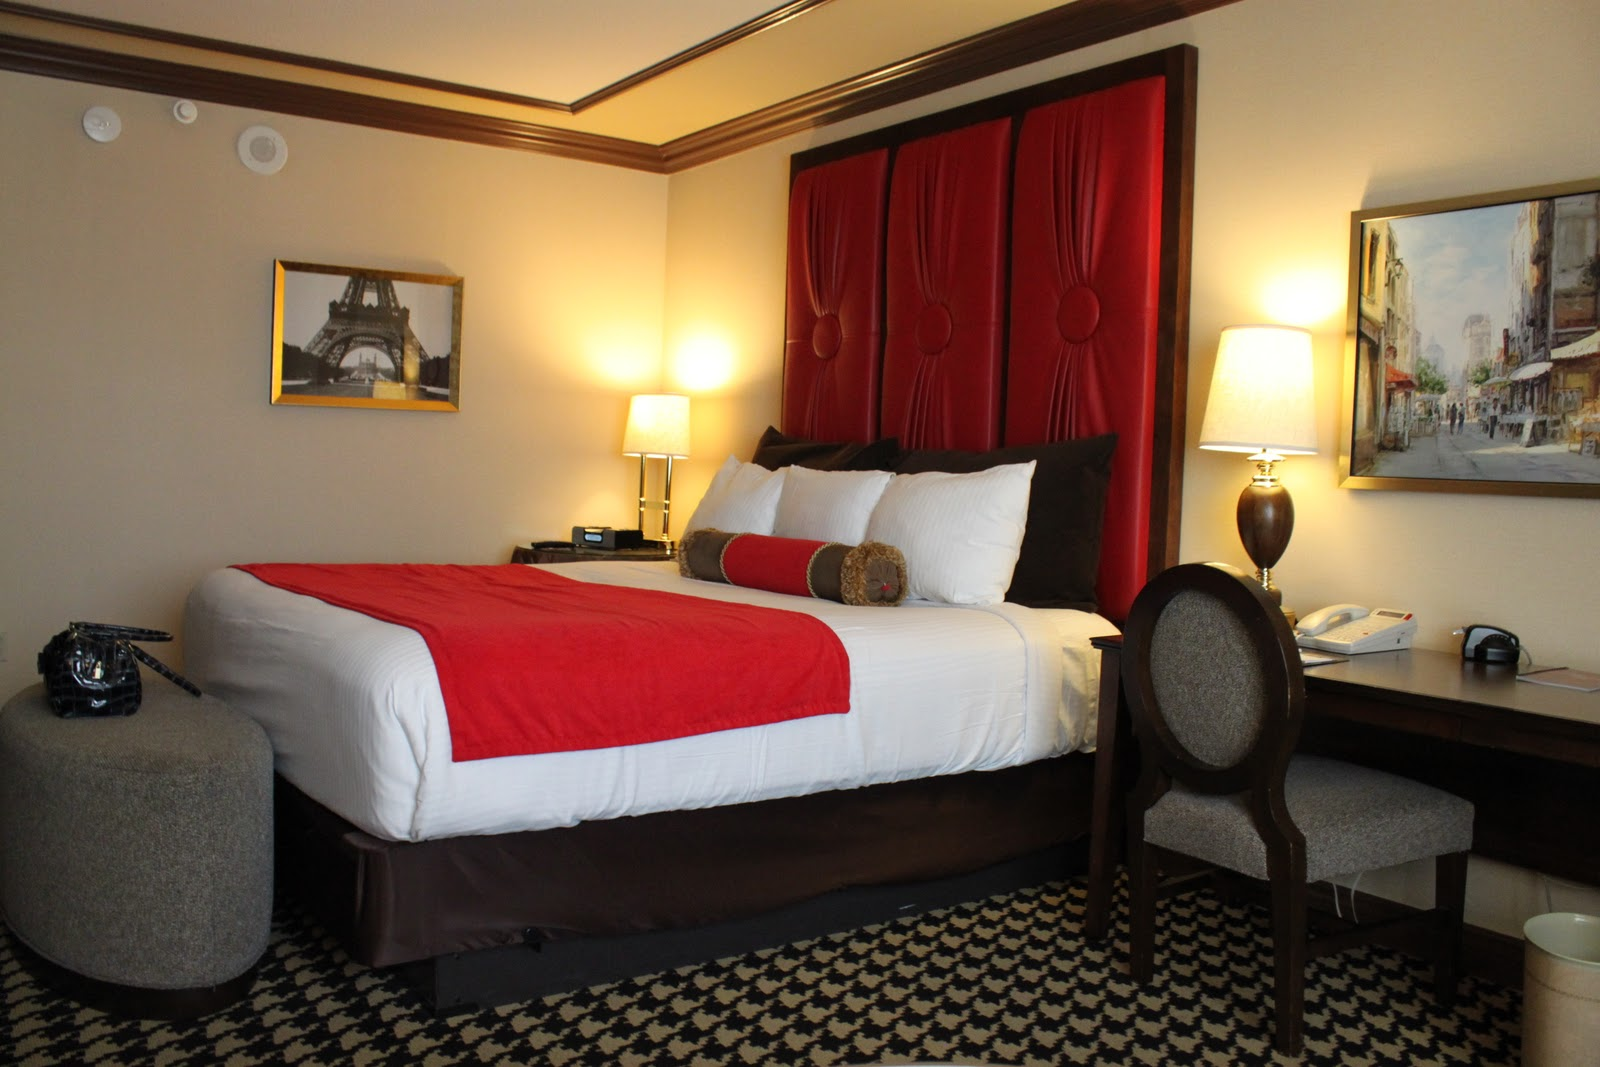 Hayleysmom on vegas paris las vegas hotel red room review with photos - Images of room ...